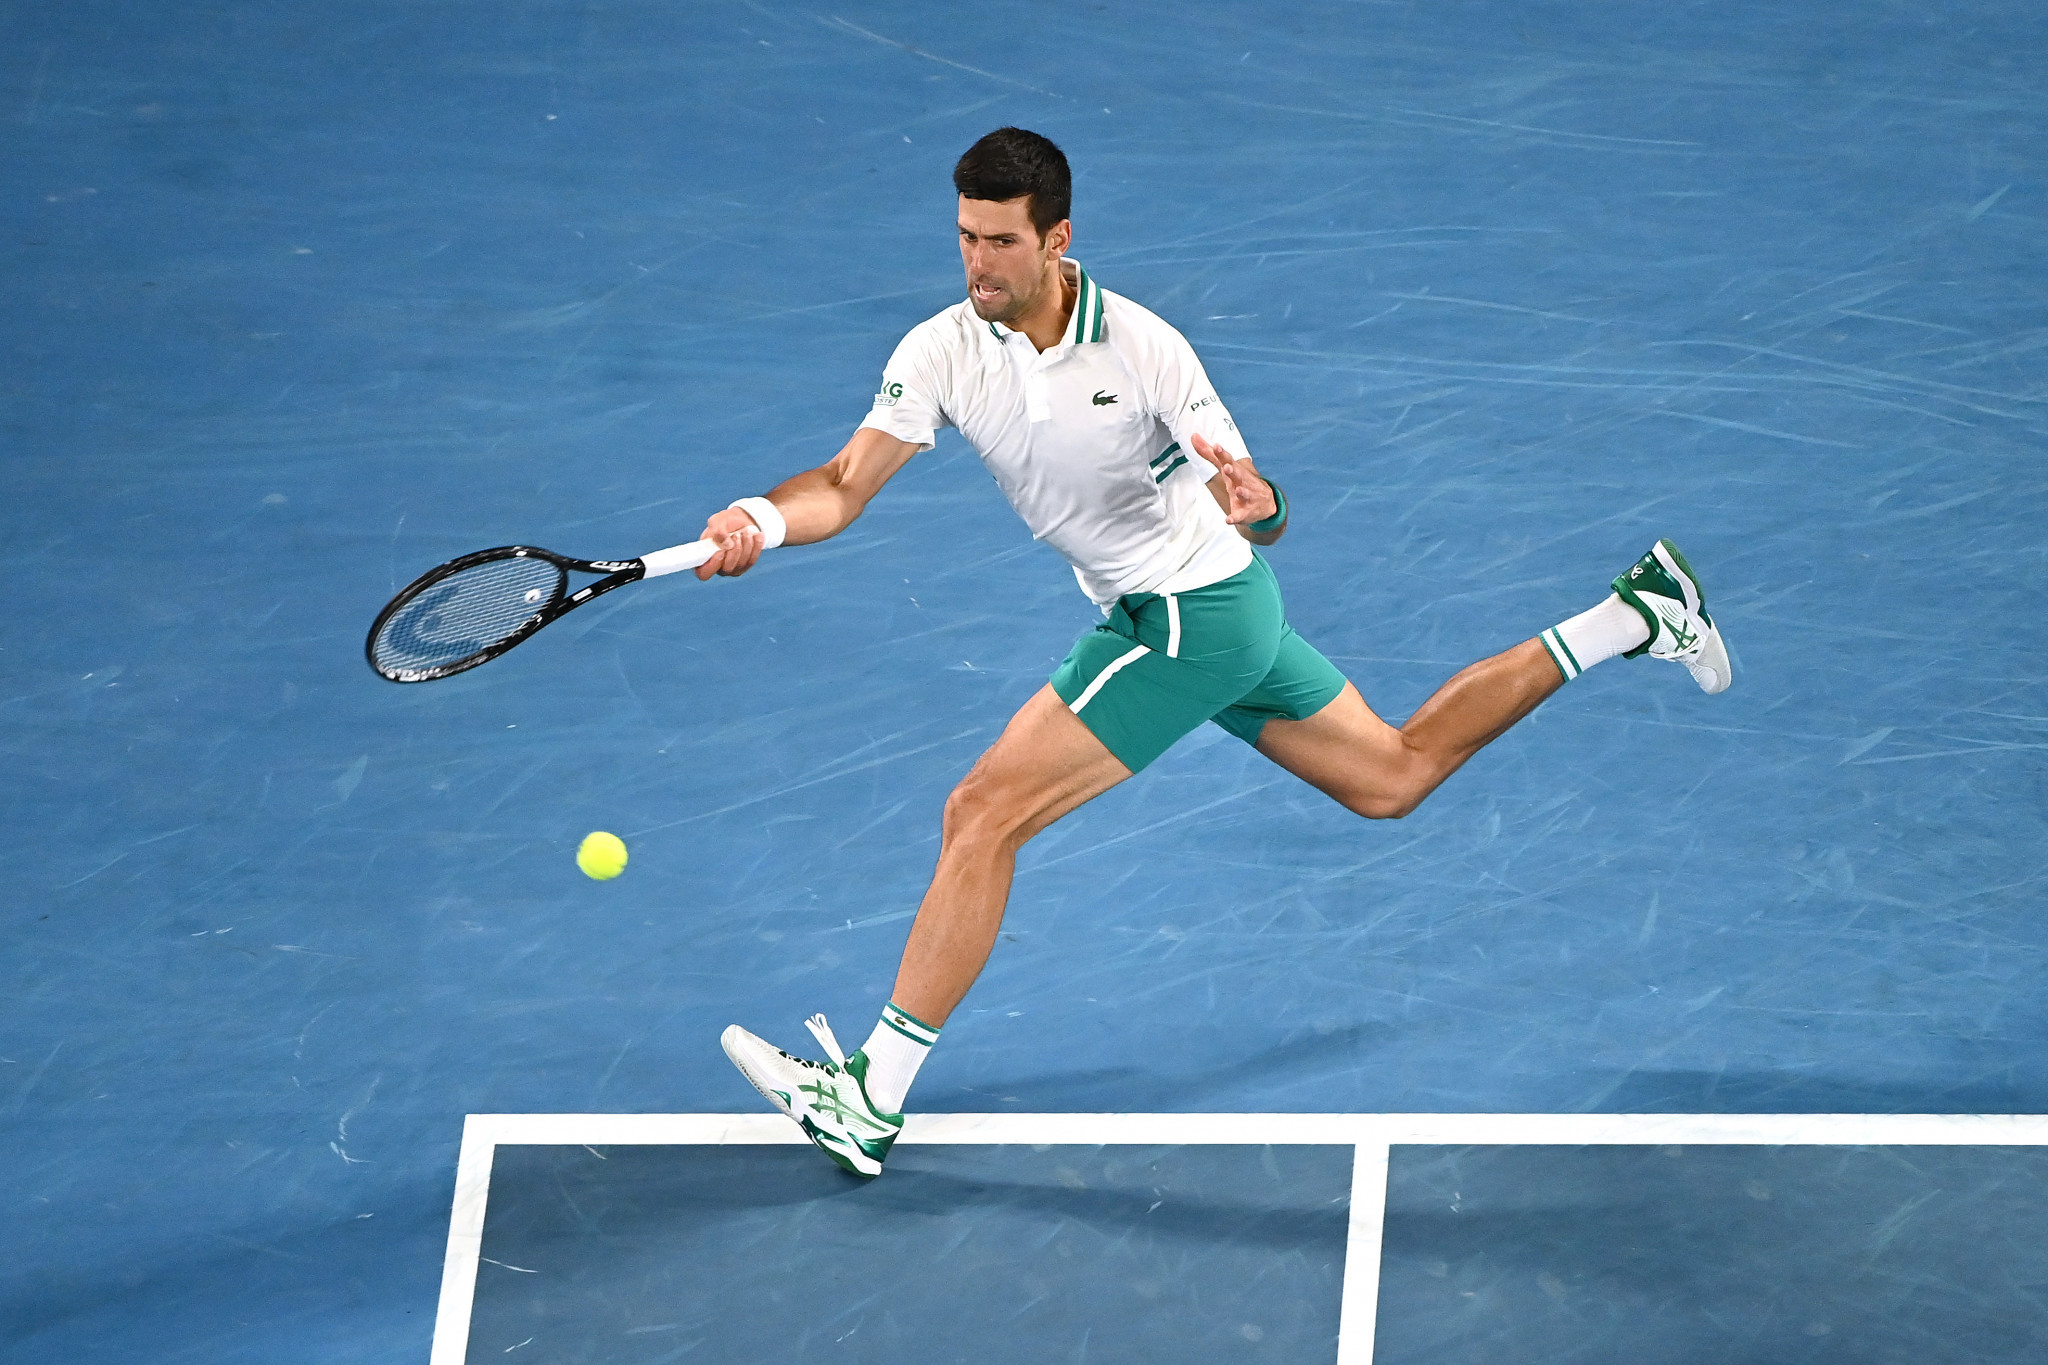 Serbian star Djokovic clinched a tight first set before powering to a convincing victory over Russia's Medvedev ©Getty Images